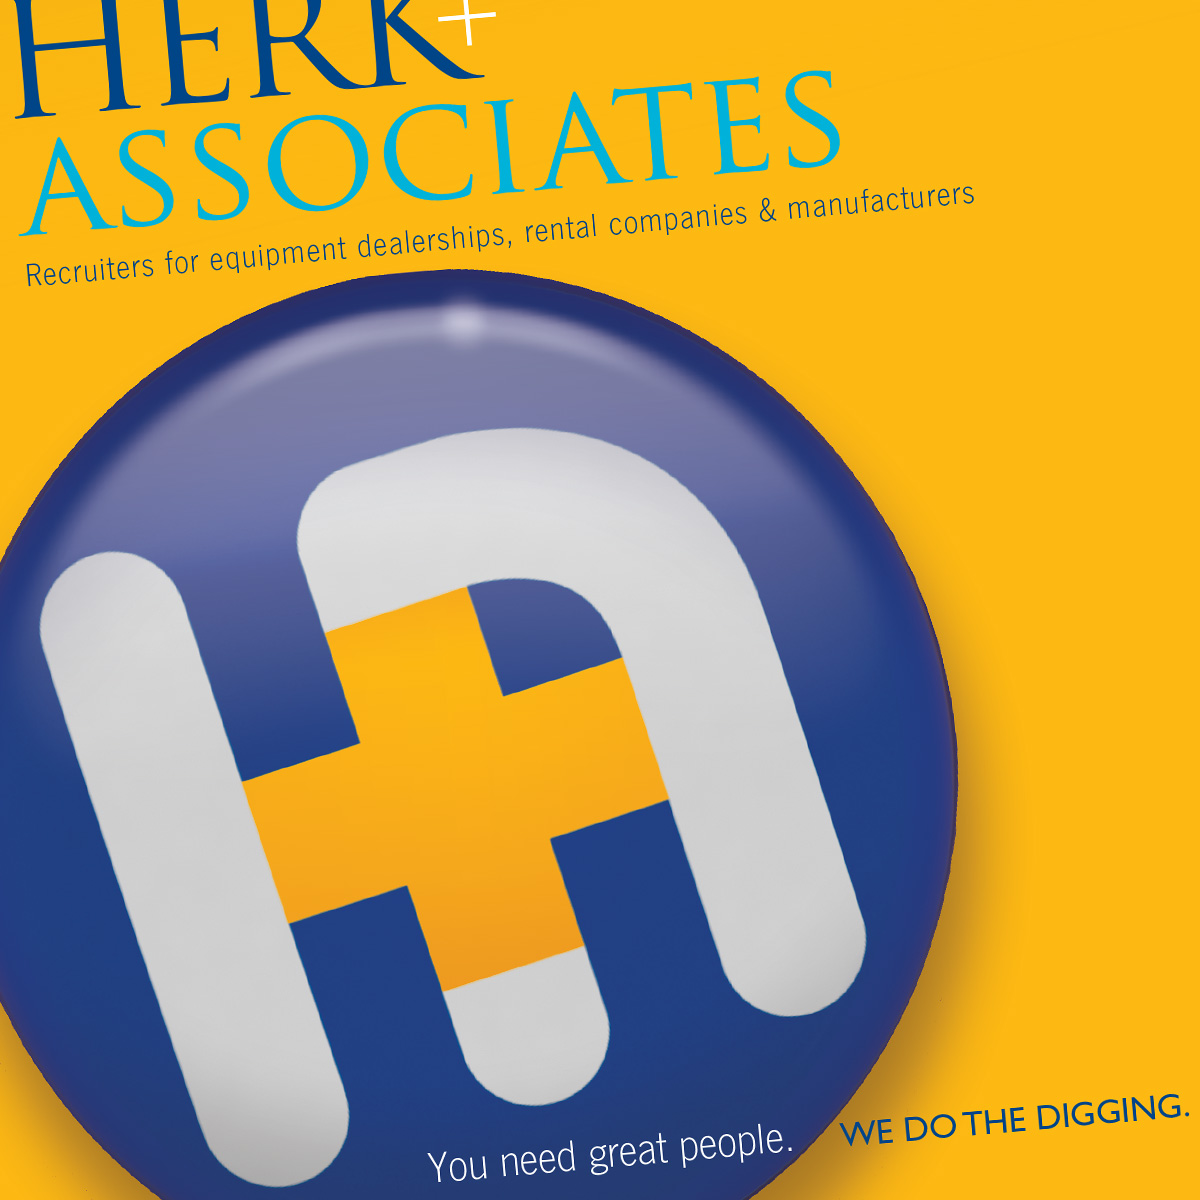 Herk & Associates brochure. Complete identity refresh and brand tag.